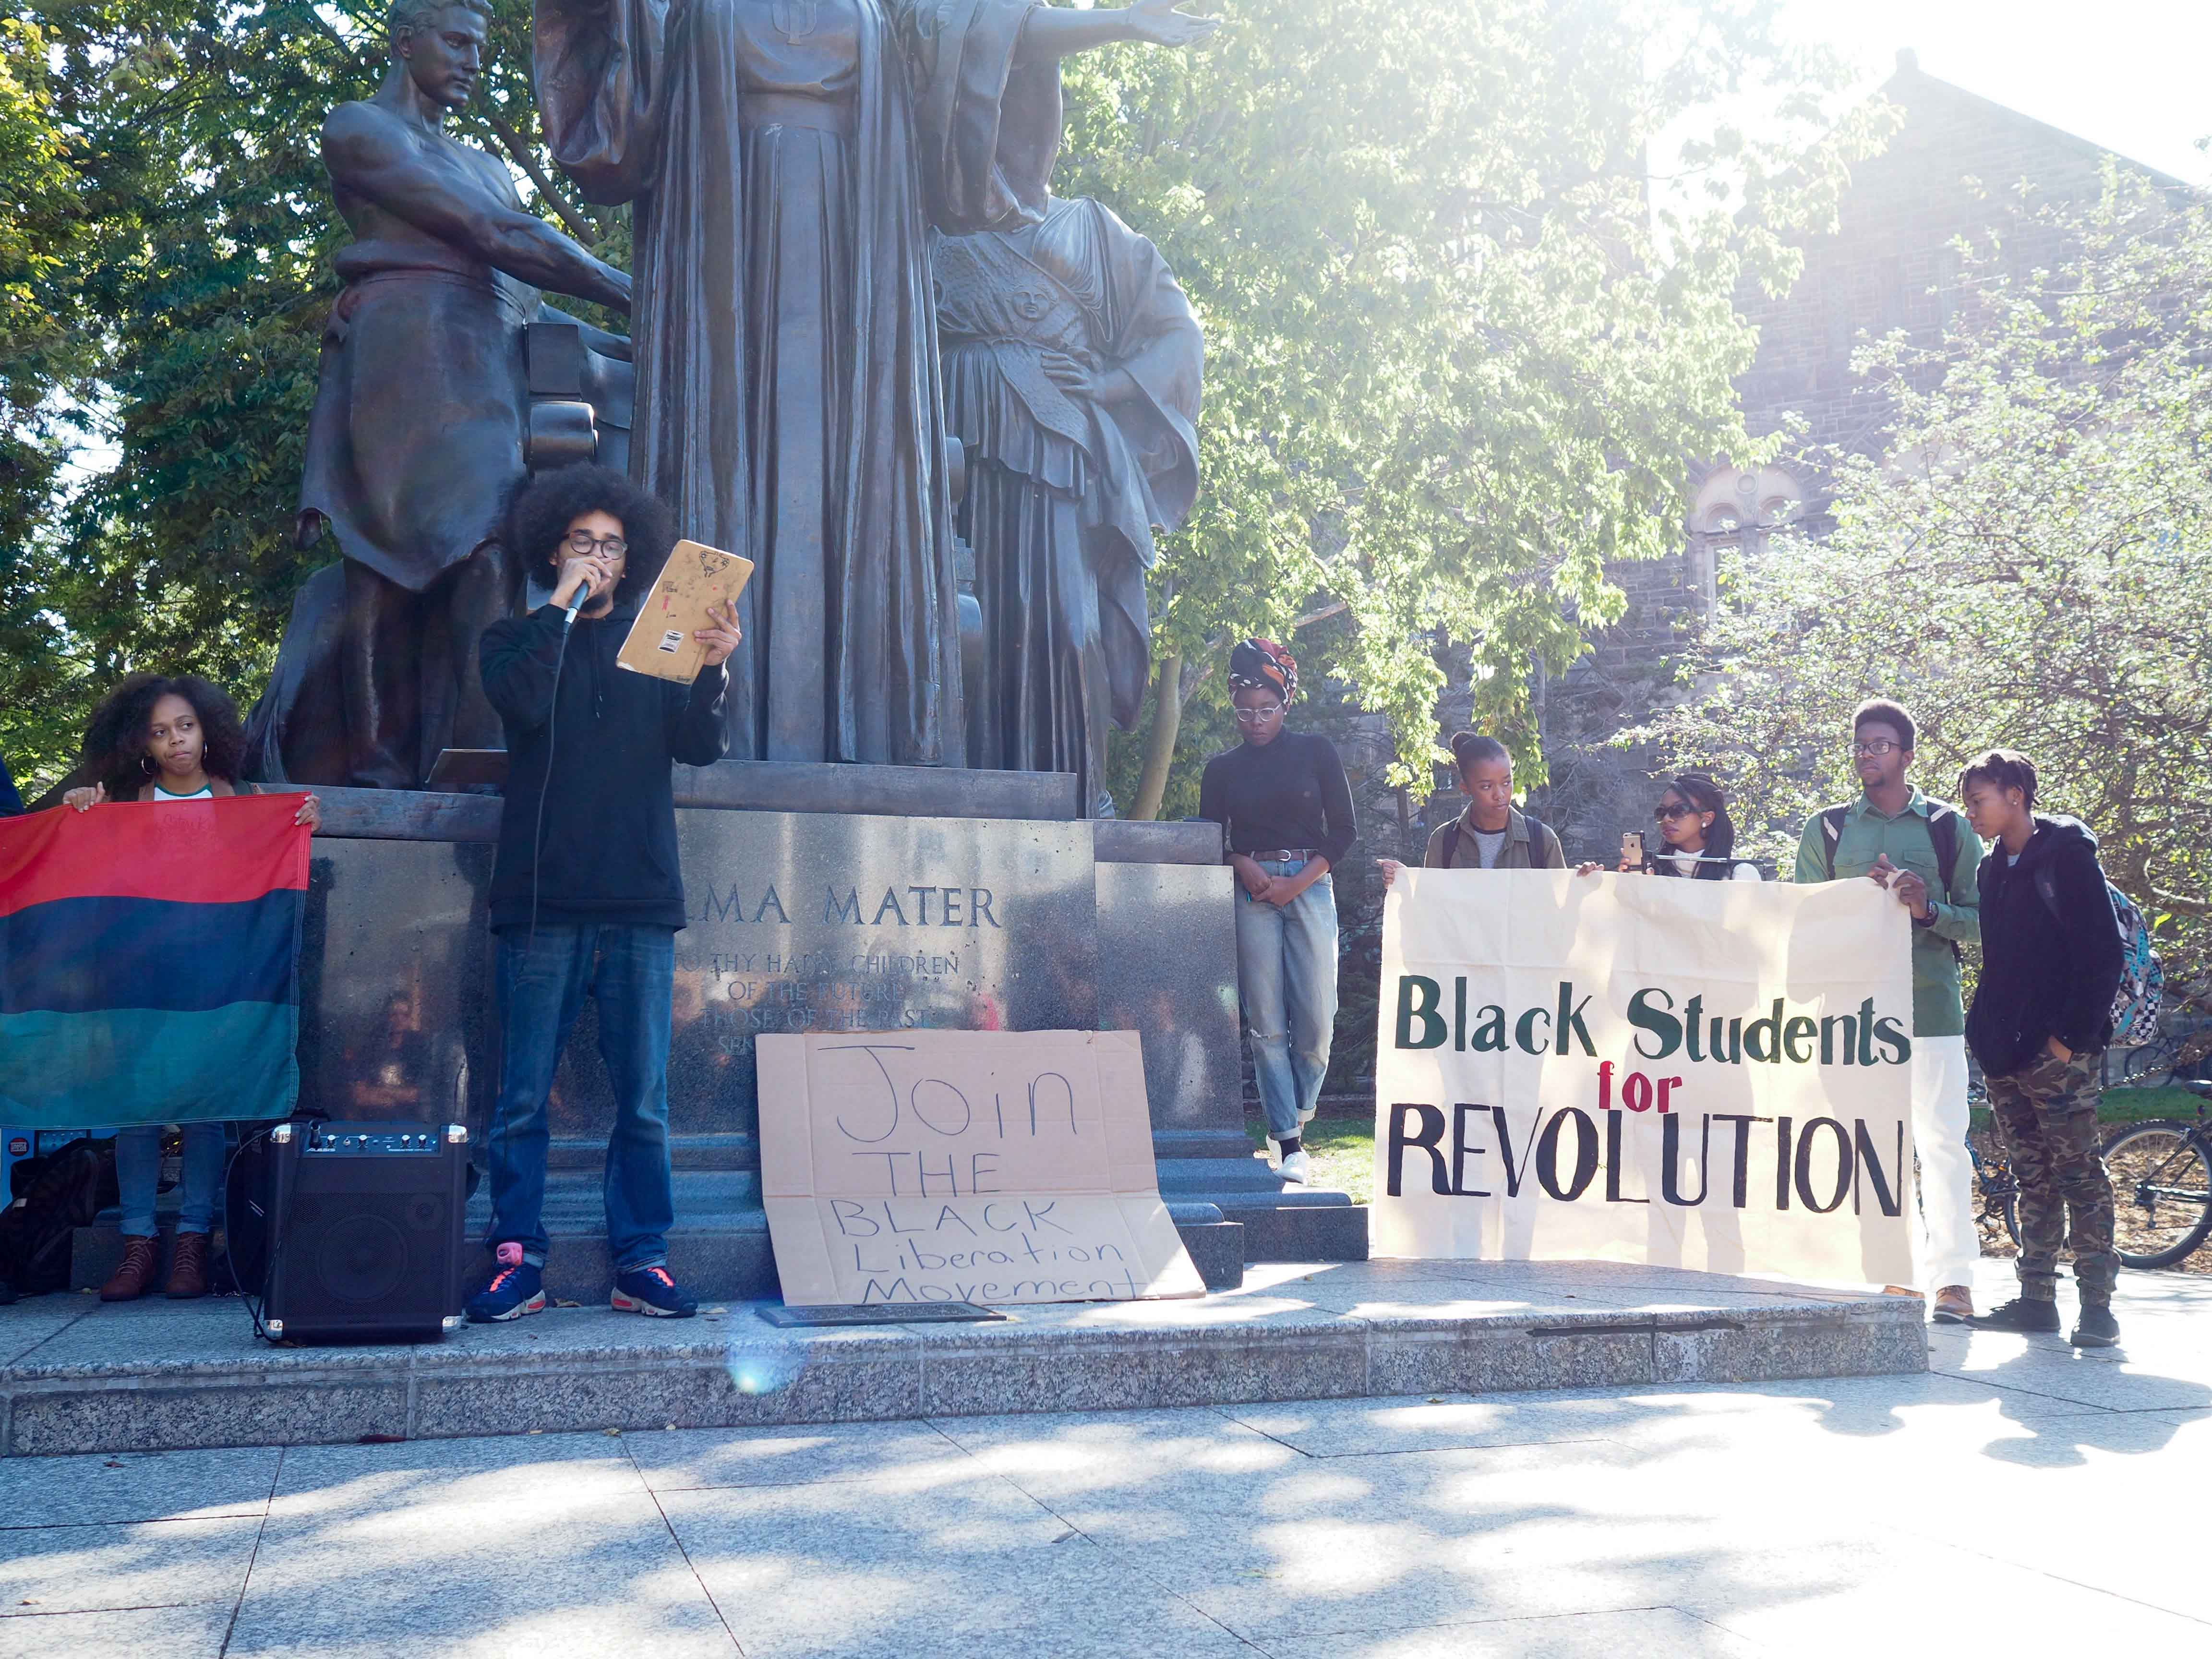 Sunny Ture, co-organizer of Black Students for Revolution, rallies students to march down Green Street on October 24, 2016.